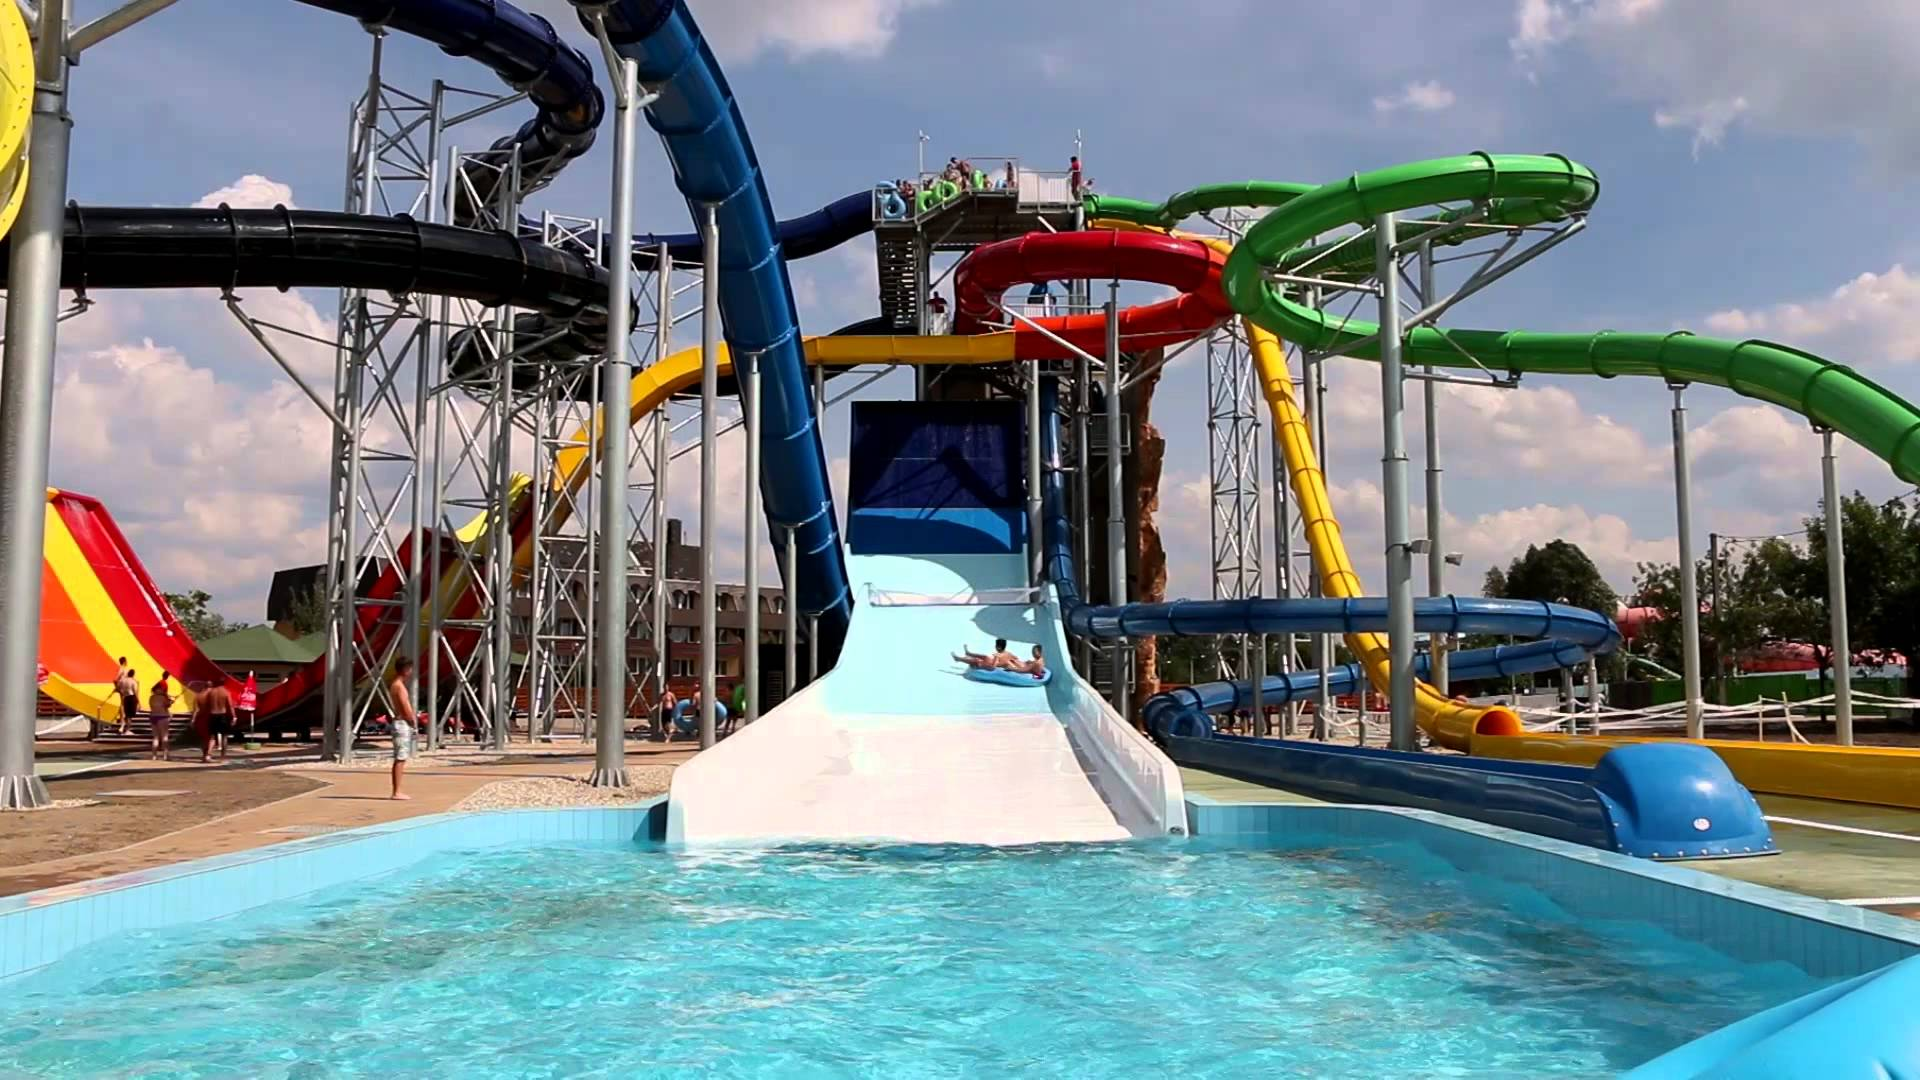 Adrenalin experience at Aqua Park!